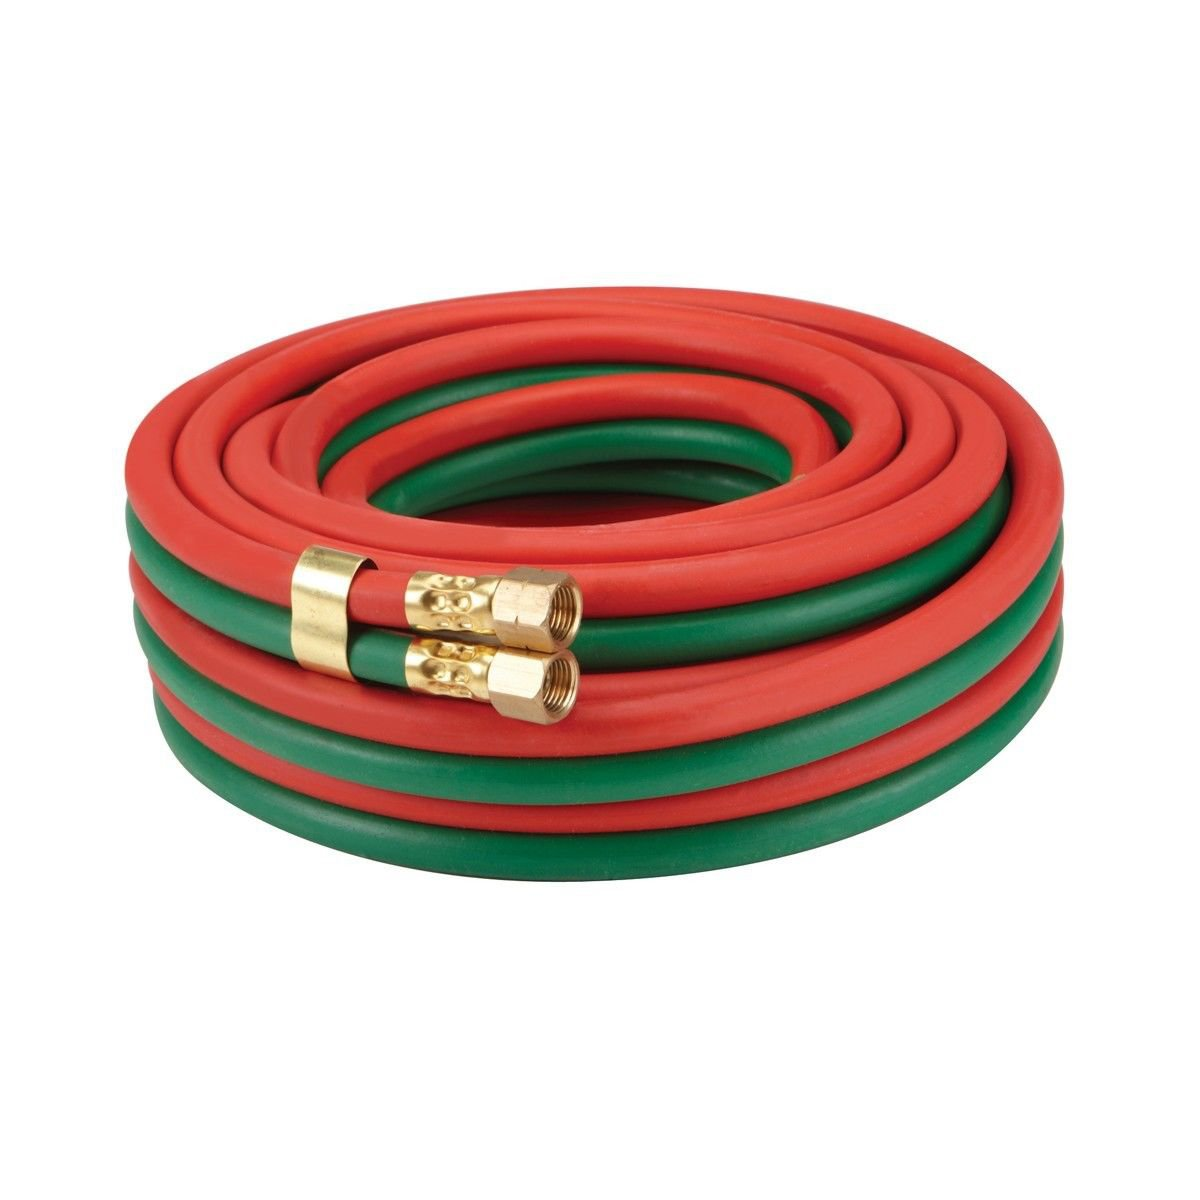 Oxygen/Acetylene Quality Welding Hose, 15 foot, 1/4 Inch, GRADE T - All Fuels